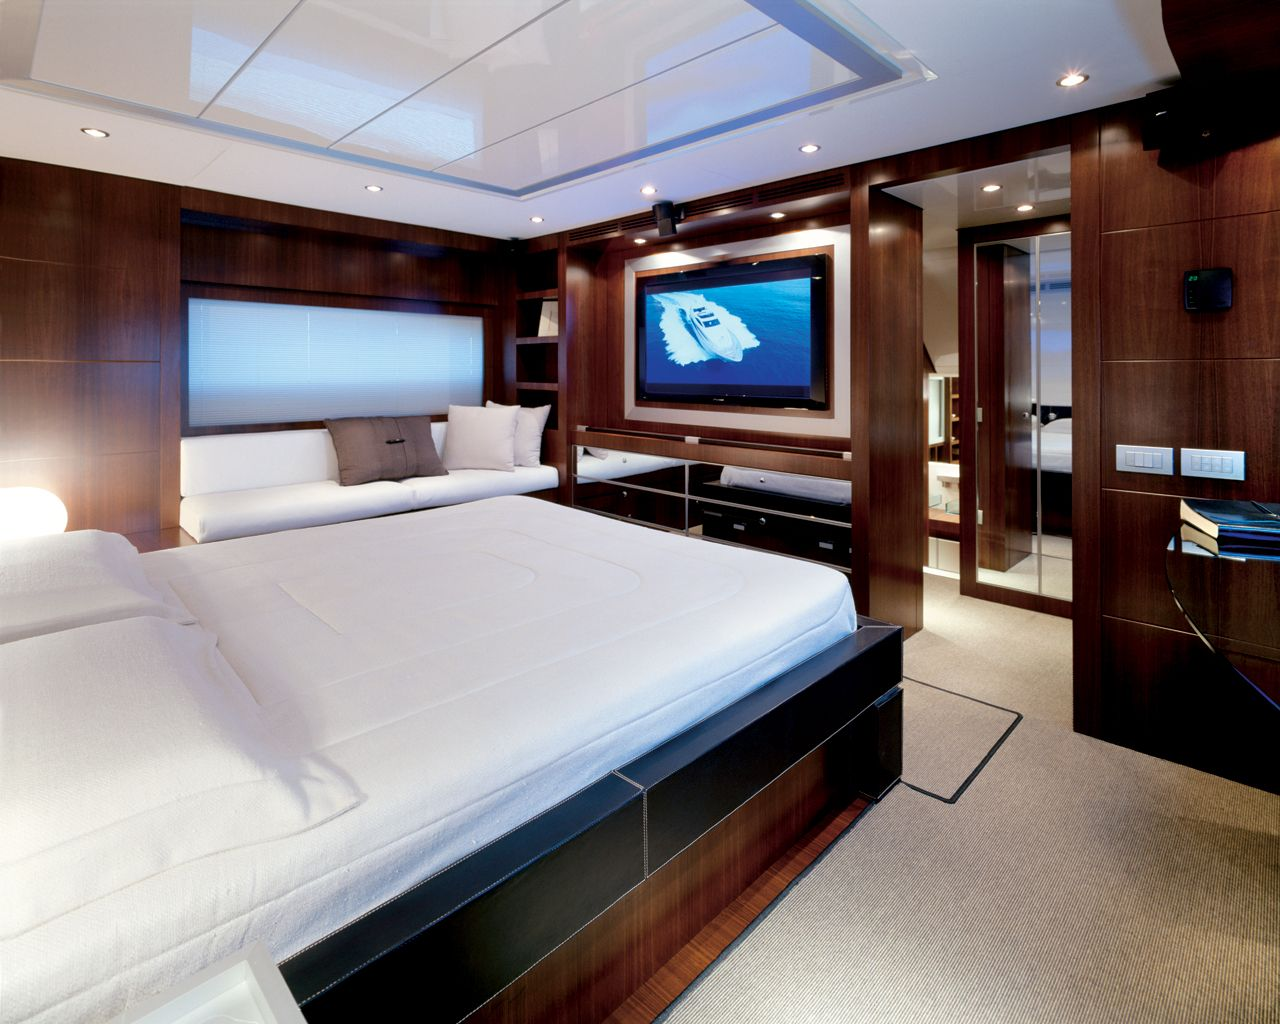 Yacht Interior Design 600 Best Luxury Yachts Images On Pinterest  Luxury Yachts Yacht